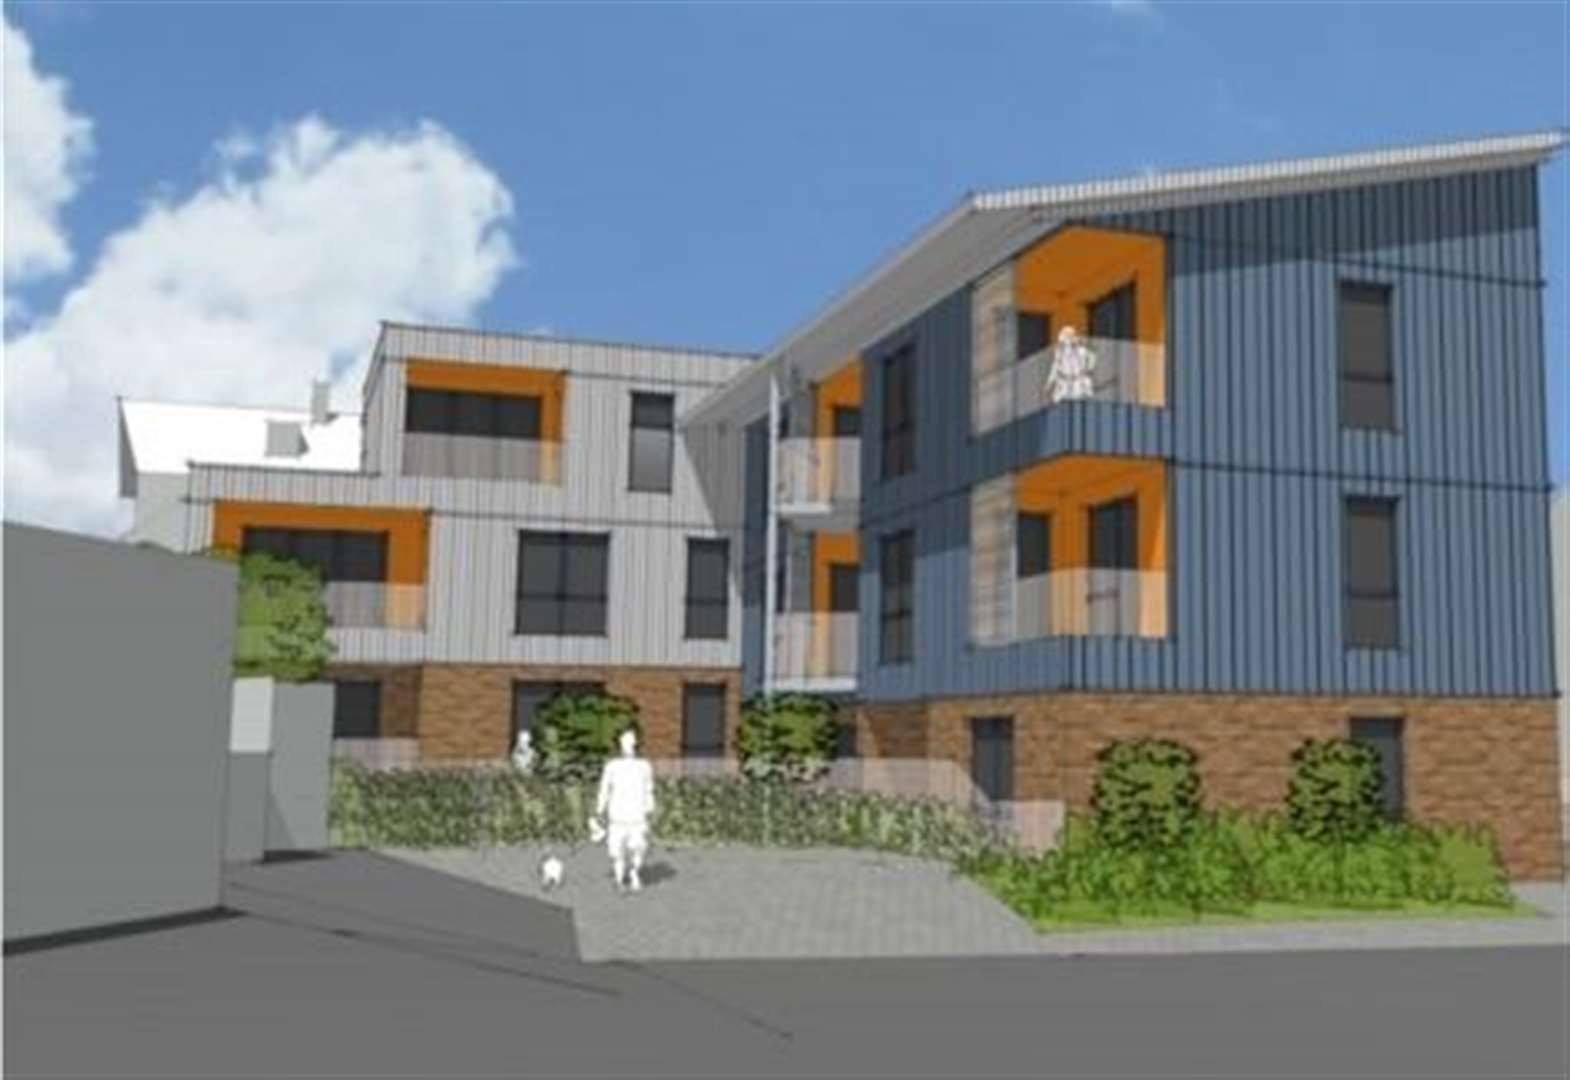 'Ugly' flats plan ridiculed